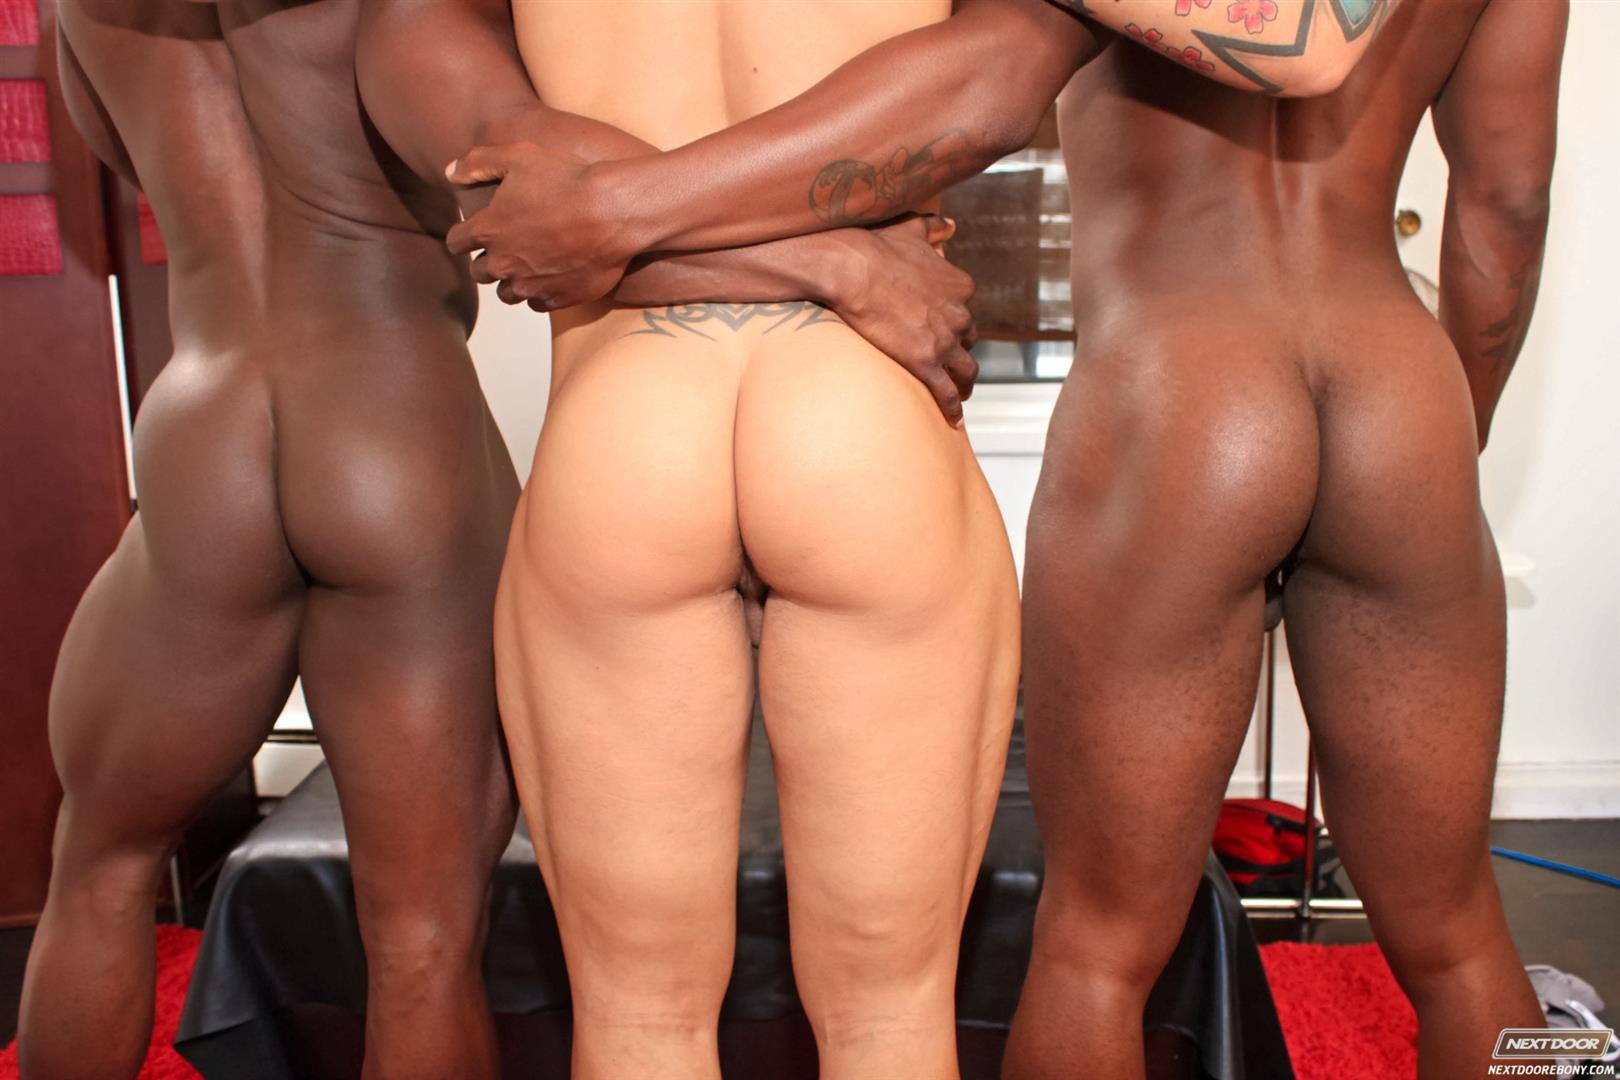 Next Door Ebony Jordano Santoro and Jay Black and Damian Brooks Interracial Gay Fucking Threeway Amateur Gay Porn 05 Interracial Muscle Couple Picks Up A Black Muscle Stud In The Park